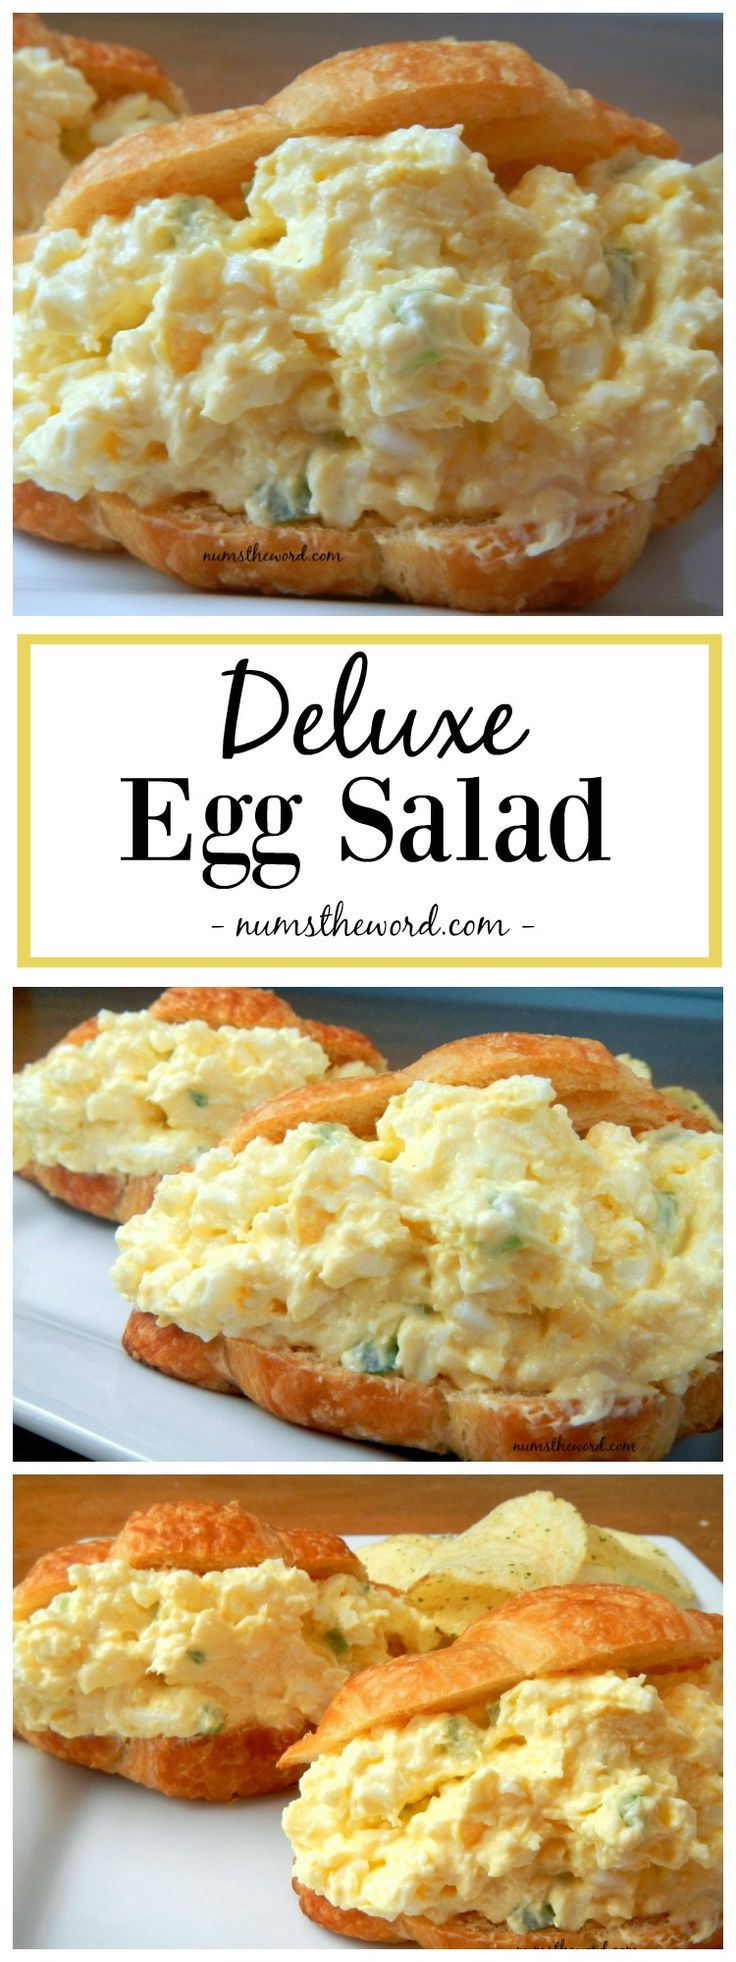 Deluxe Egg Salad ~ Looking for an upgrade on the traditional egg salad? Try this delicious one... It includes cream cheese, grated onions and is by far my favorite version of egg salad!